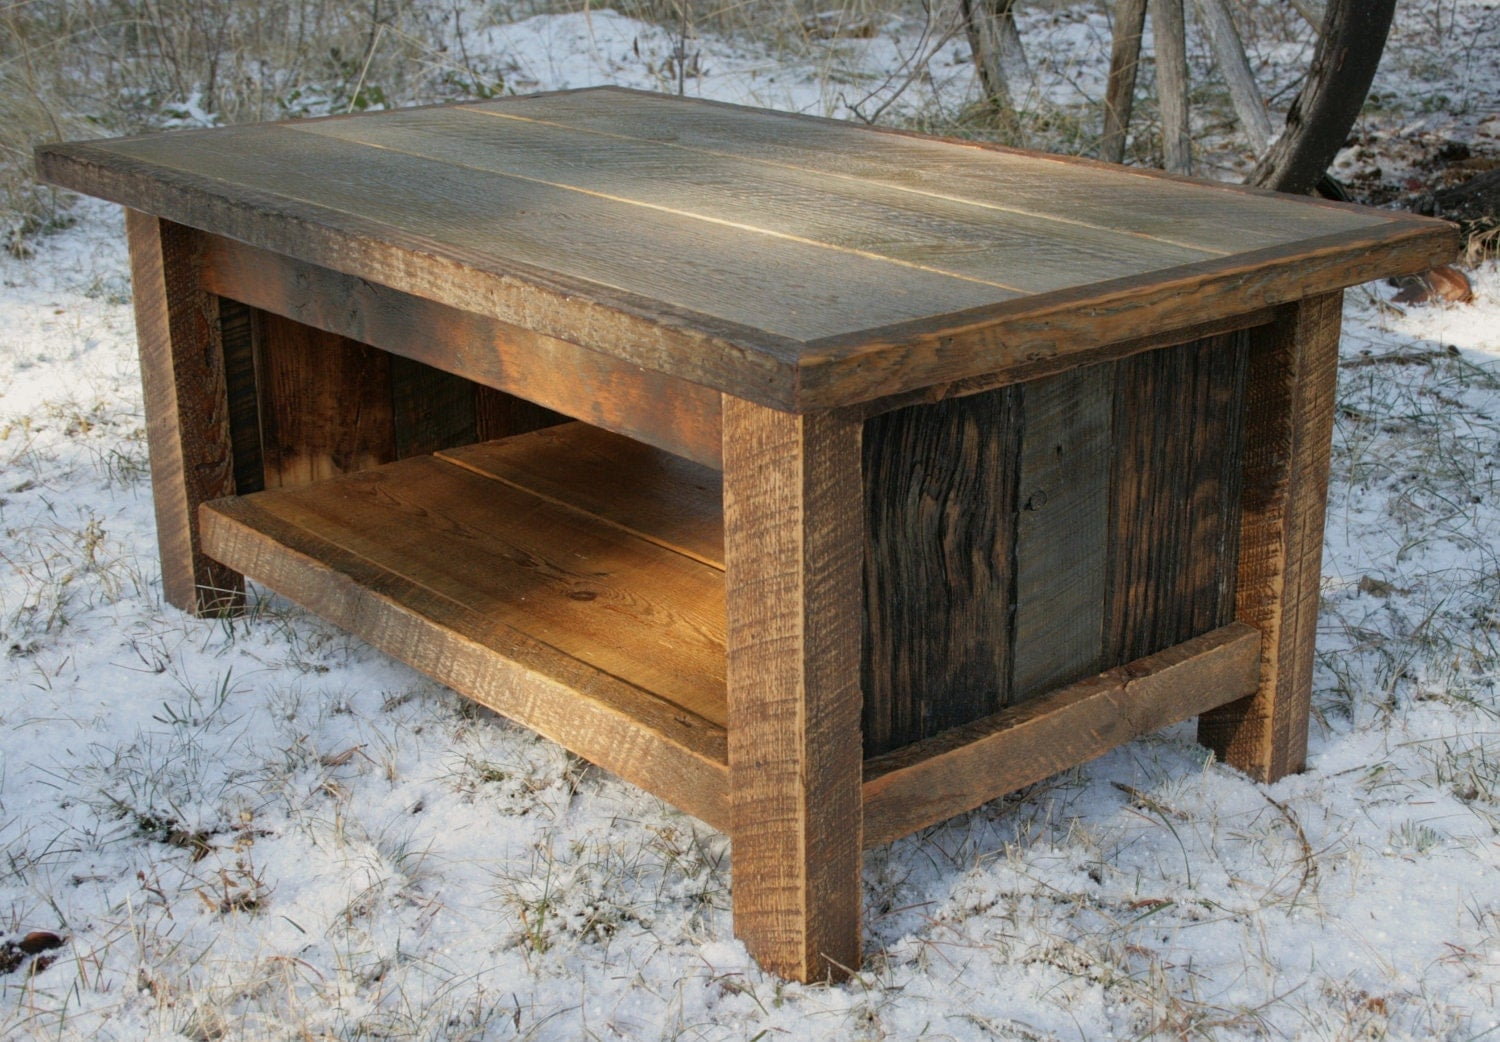 Rustic Reclaimed Coffee Table By Echopeakdesign On Etsy